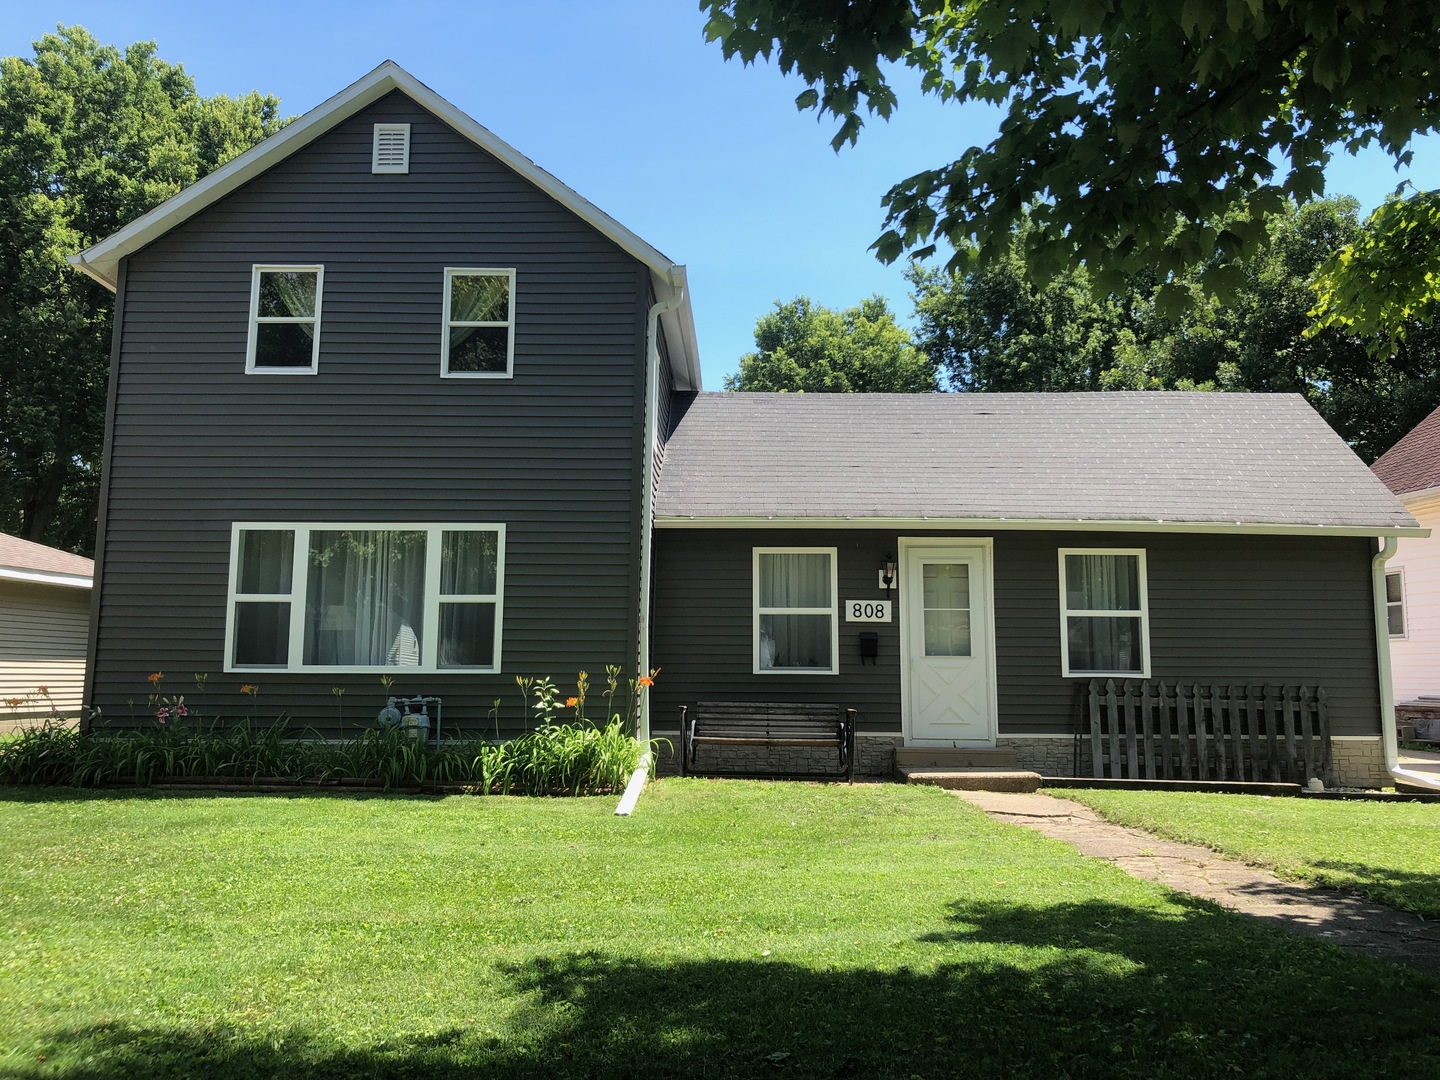 808 1st ,Sterling, Illinois 61081